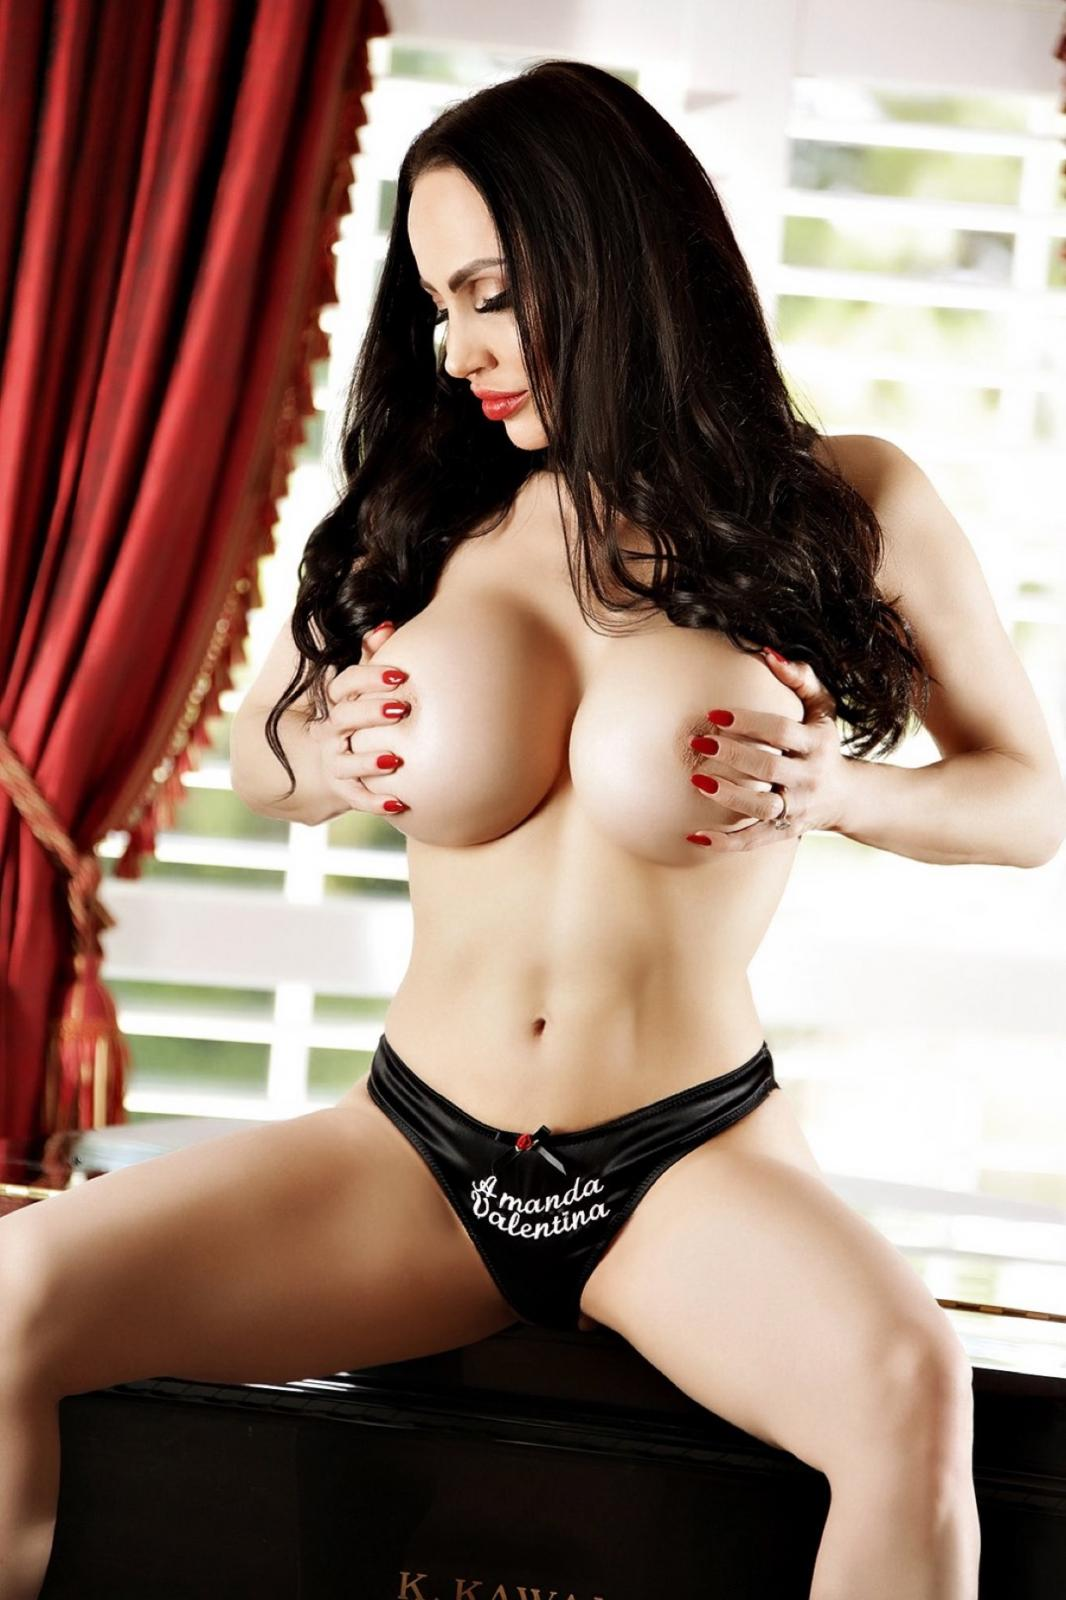 Amanda Valentina :: July 2017 :: Existing Clients' Reward